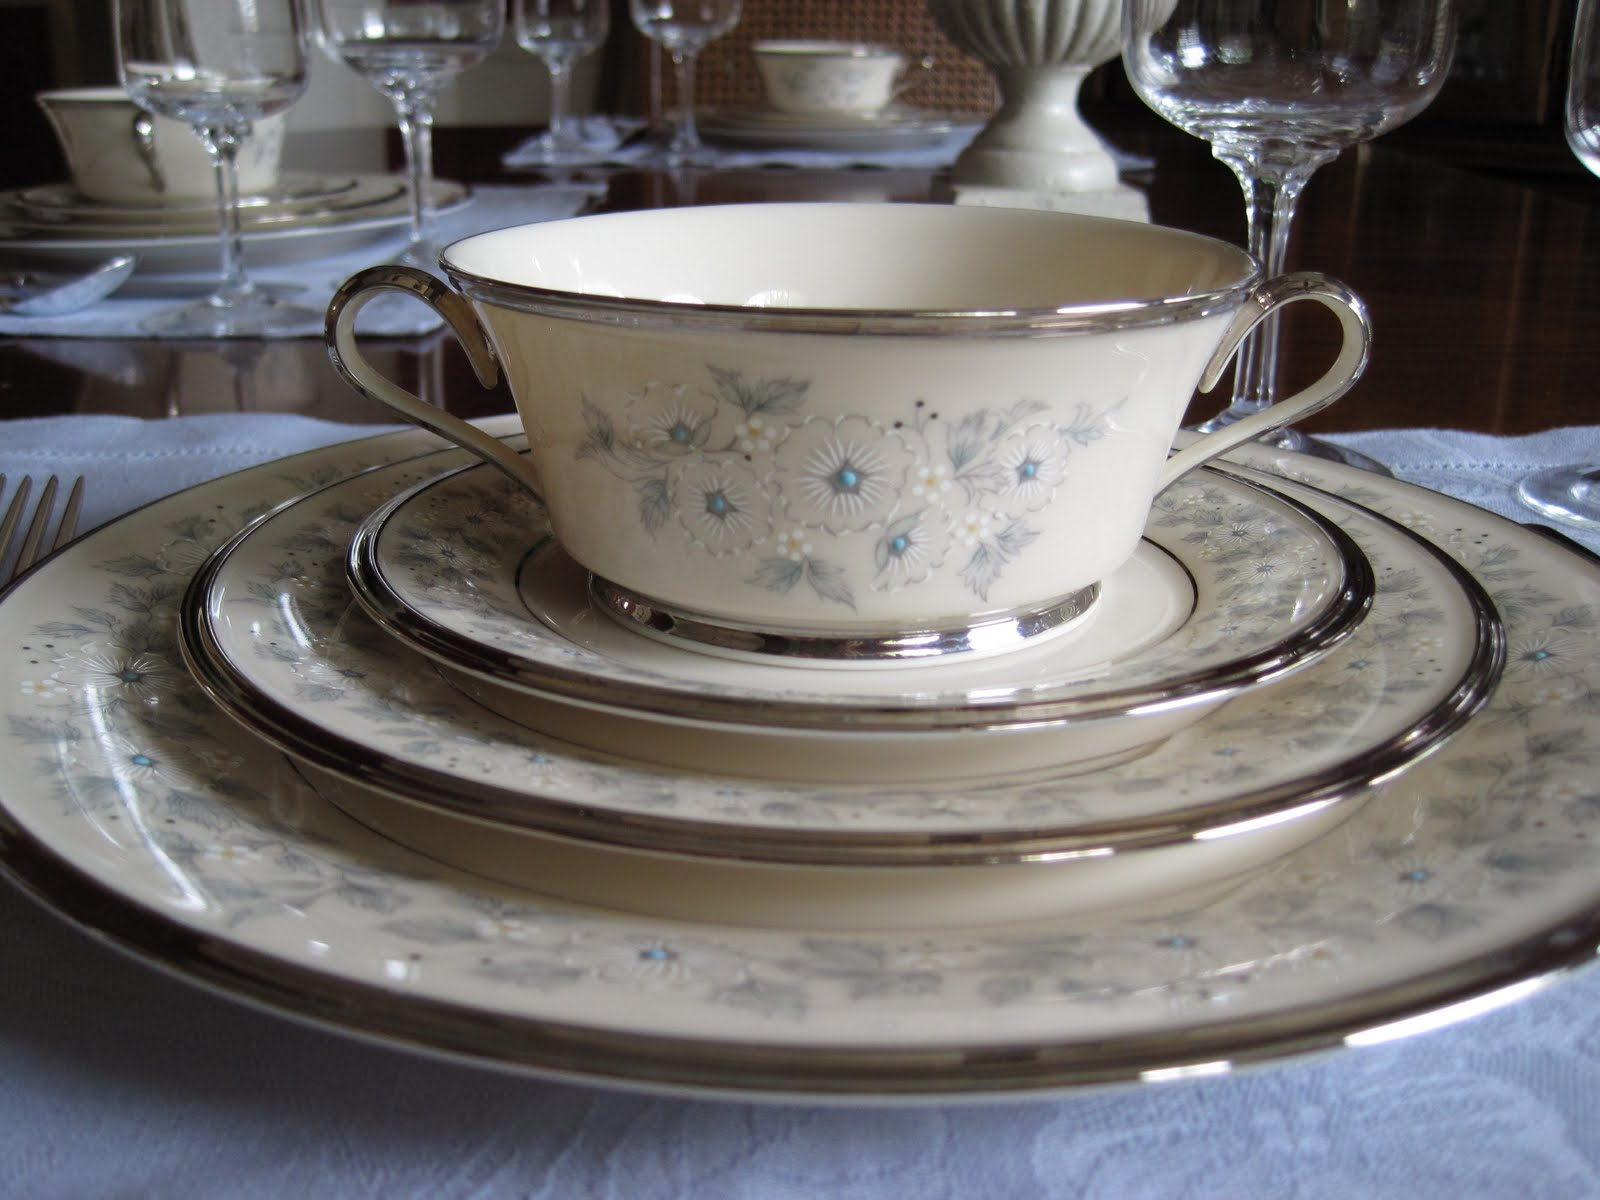 Appealing Discontinued Lenox China Patterns Gallery - Best Image ...